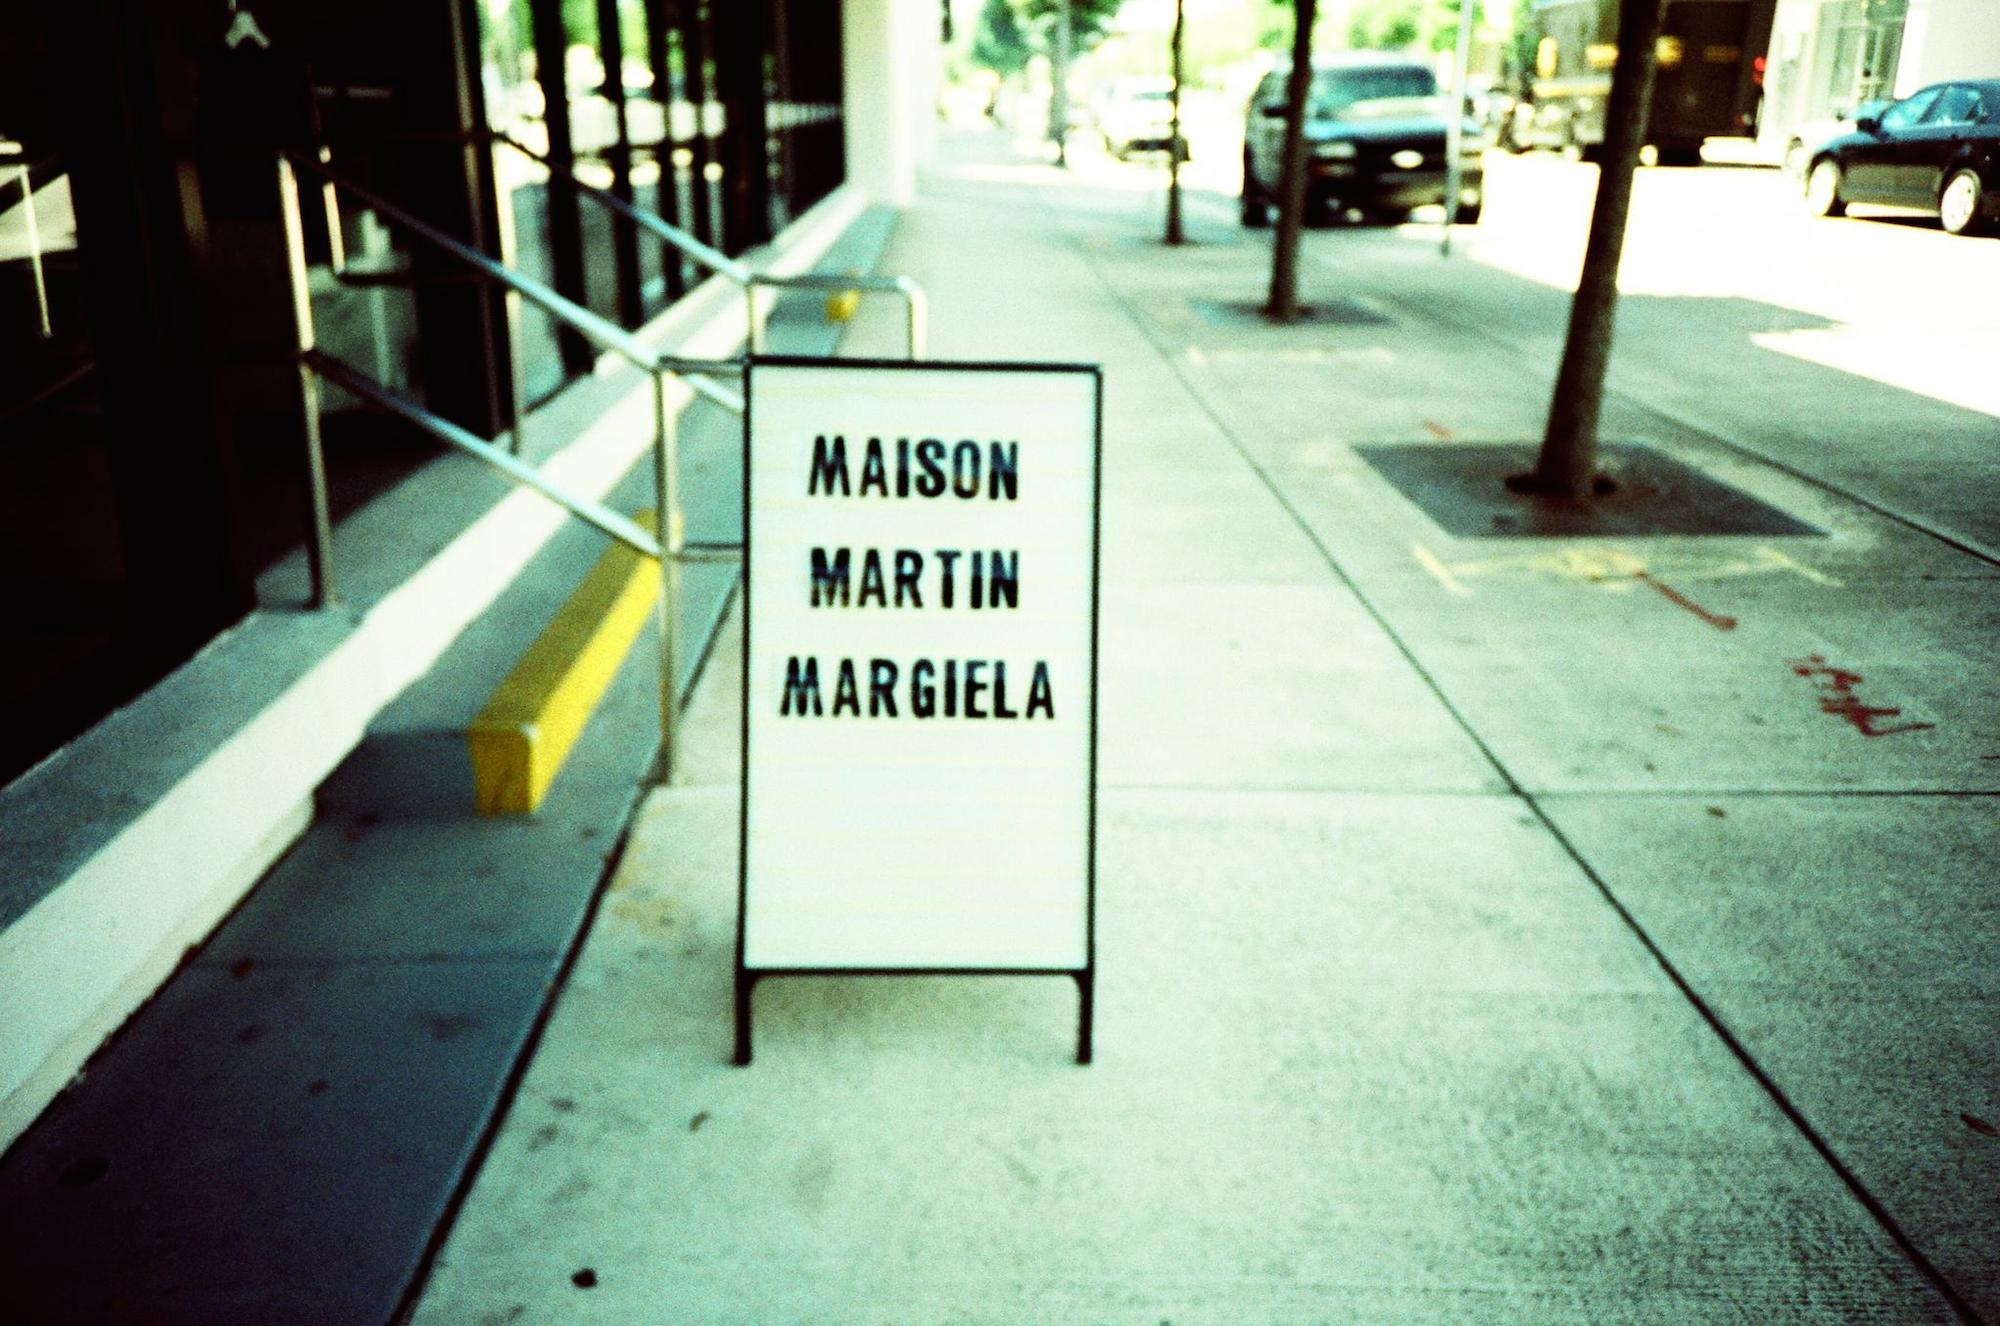 Things to do in Paris in March like exhibitions at fashion brand Maison Martin Margiela's space.